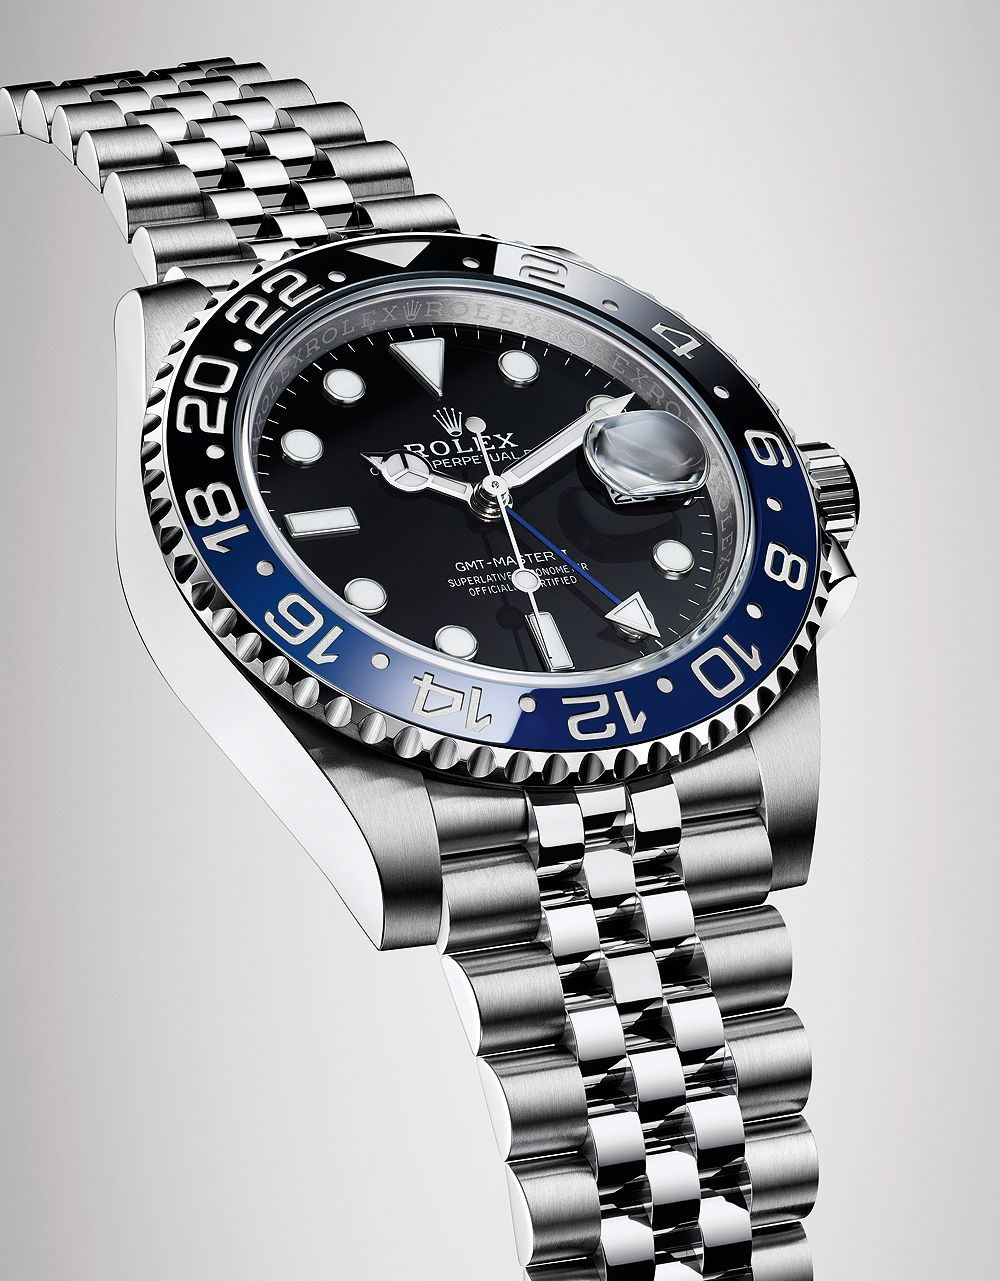 Batman Returns Rolex Launches Gmt Master Ii With Black And Blue Bezel And Jubilee Bracelet Rolex Gmt Master Ii Rolex Gmt Rolex Gmt Master